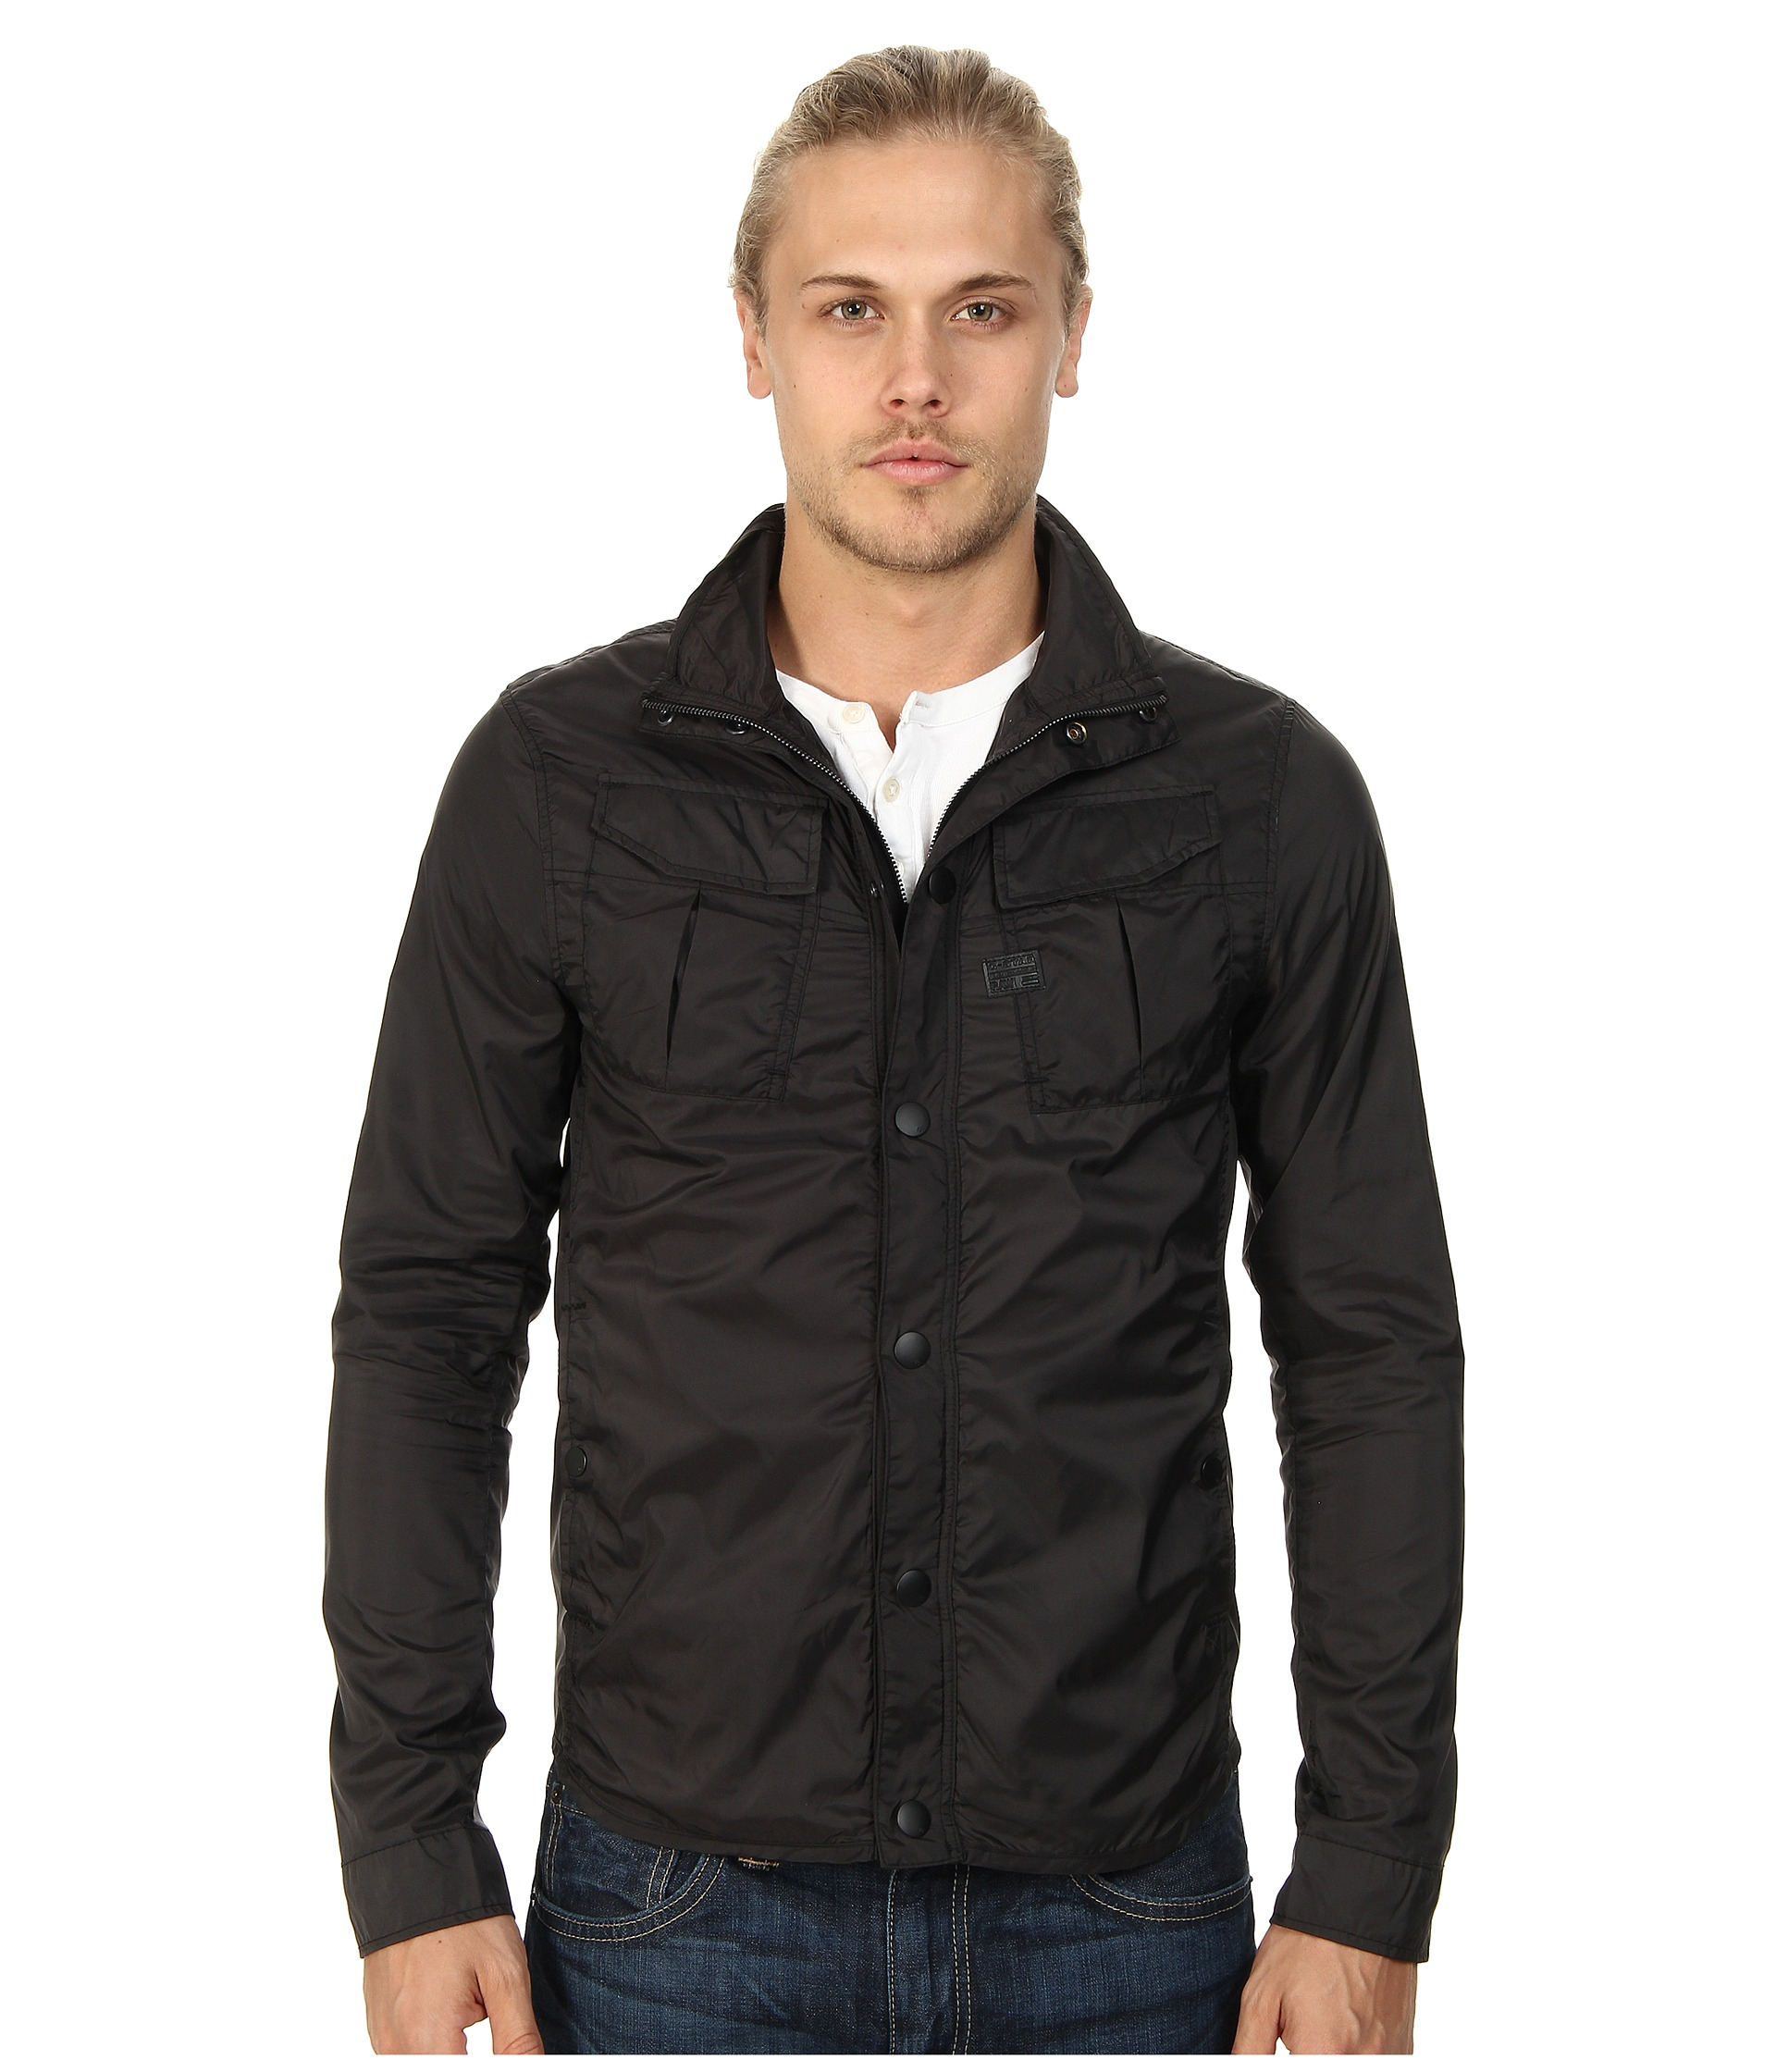 G-star raw Filch Camo Overshirt In Myrow Nylon in Black for Men | Lyst